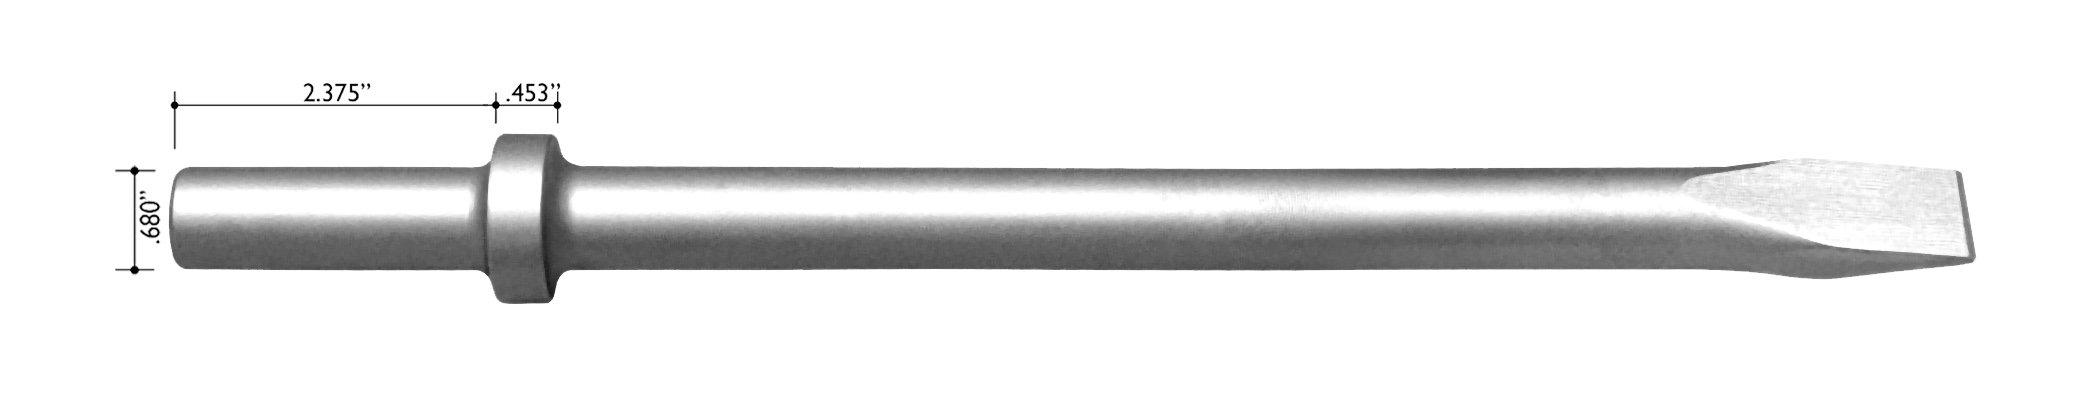 Champion Chisel, 9-Inch Long .680'' Round Shank Round Collar Chipping Hammer Narrow, Flat Chisel by Champion Chisel Works